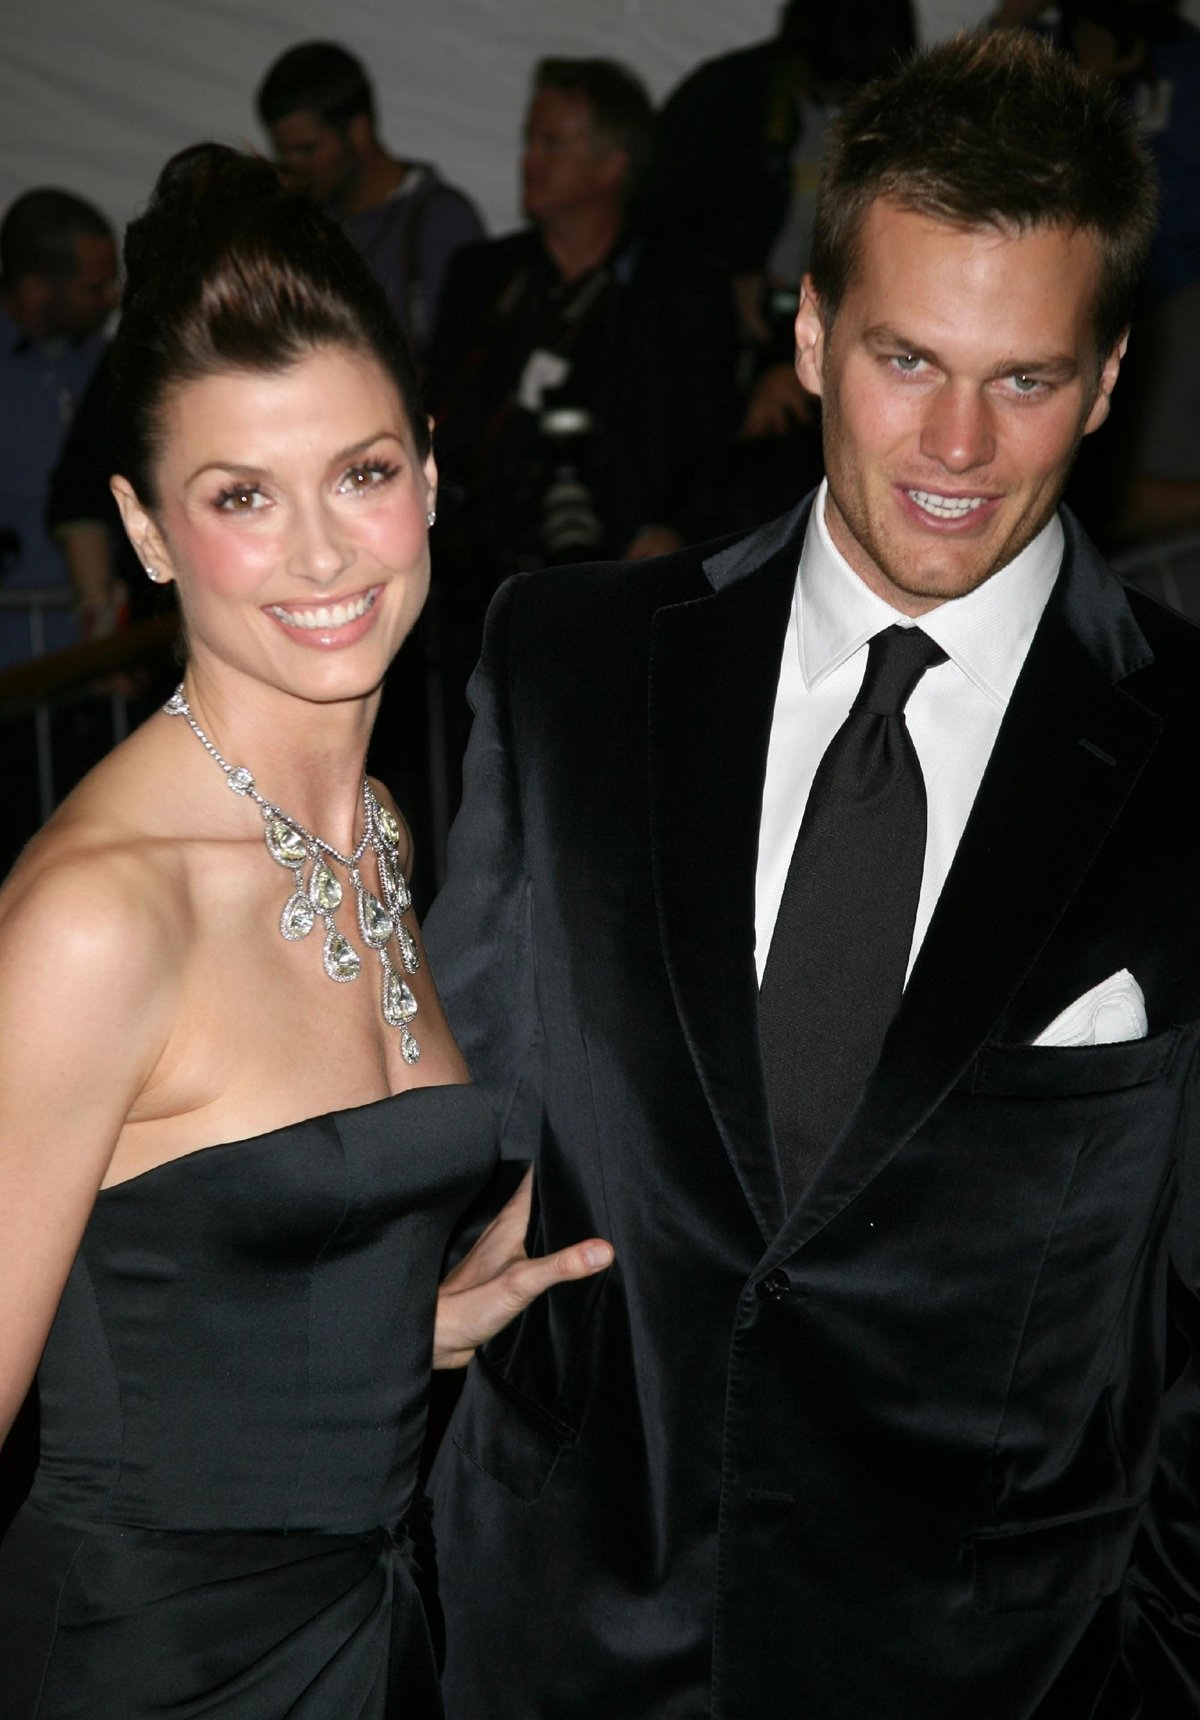 Bridget Moynahan and Tom Brady started dating in 2004 and split in 2006